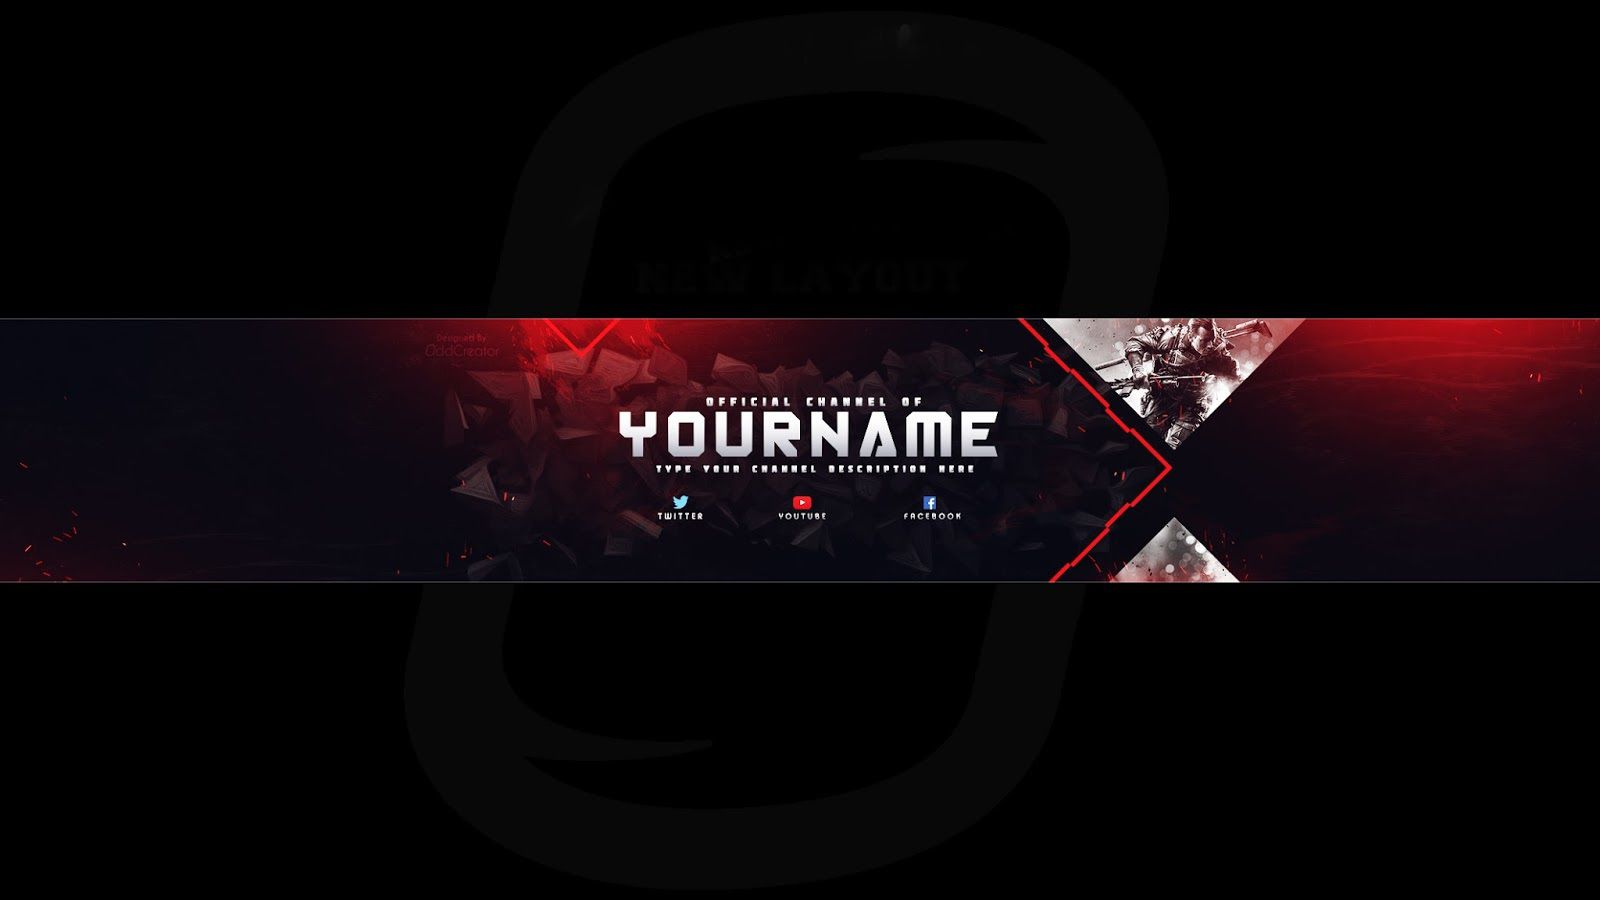 008 Excellent Free Channel Art Template Idea Full